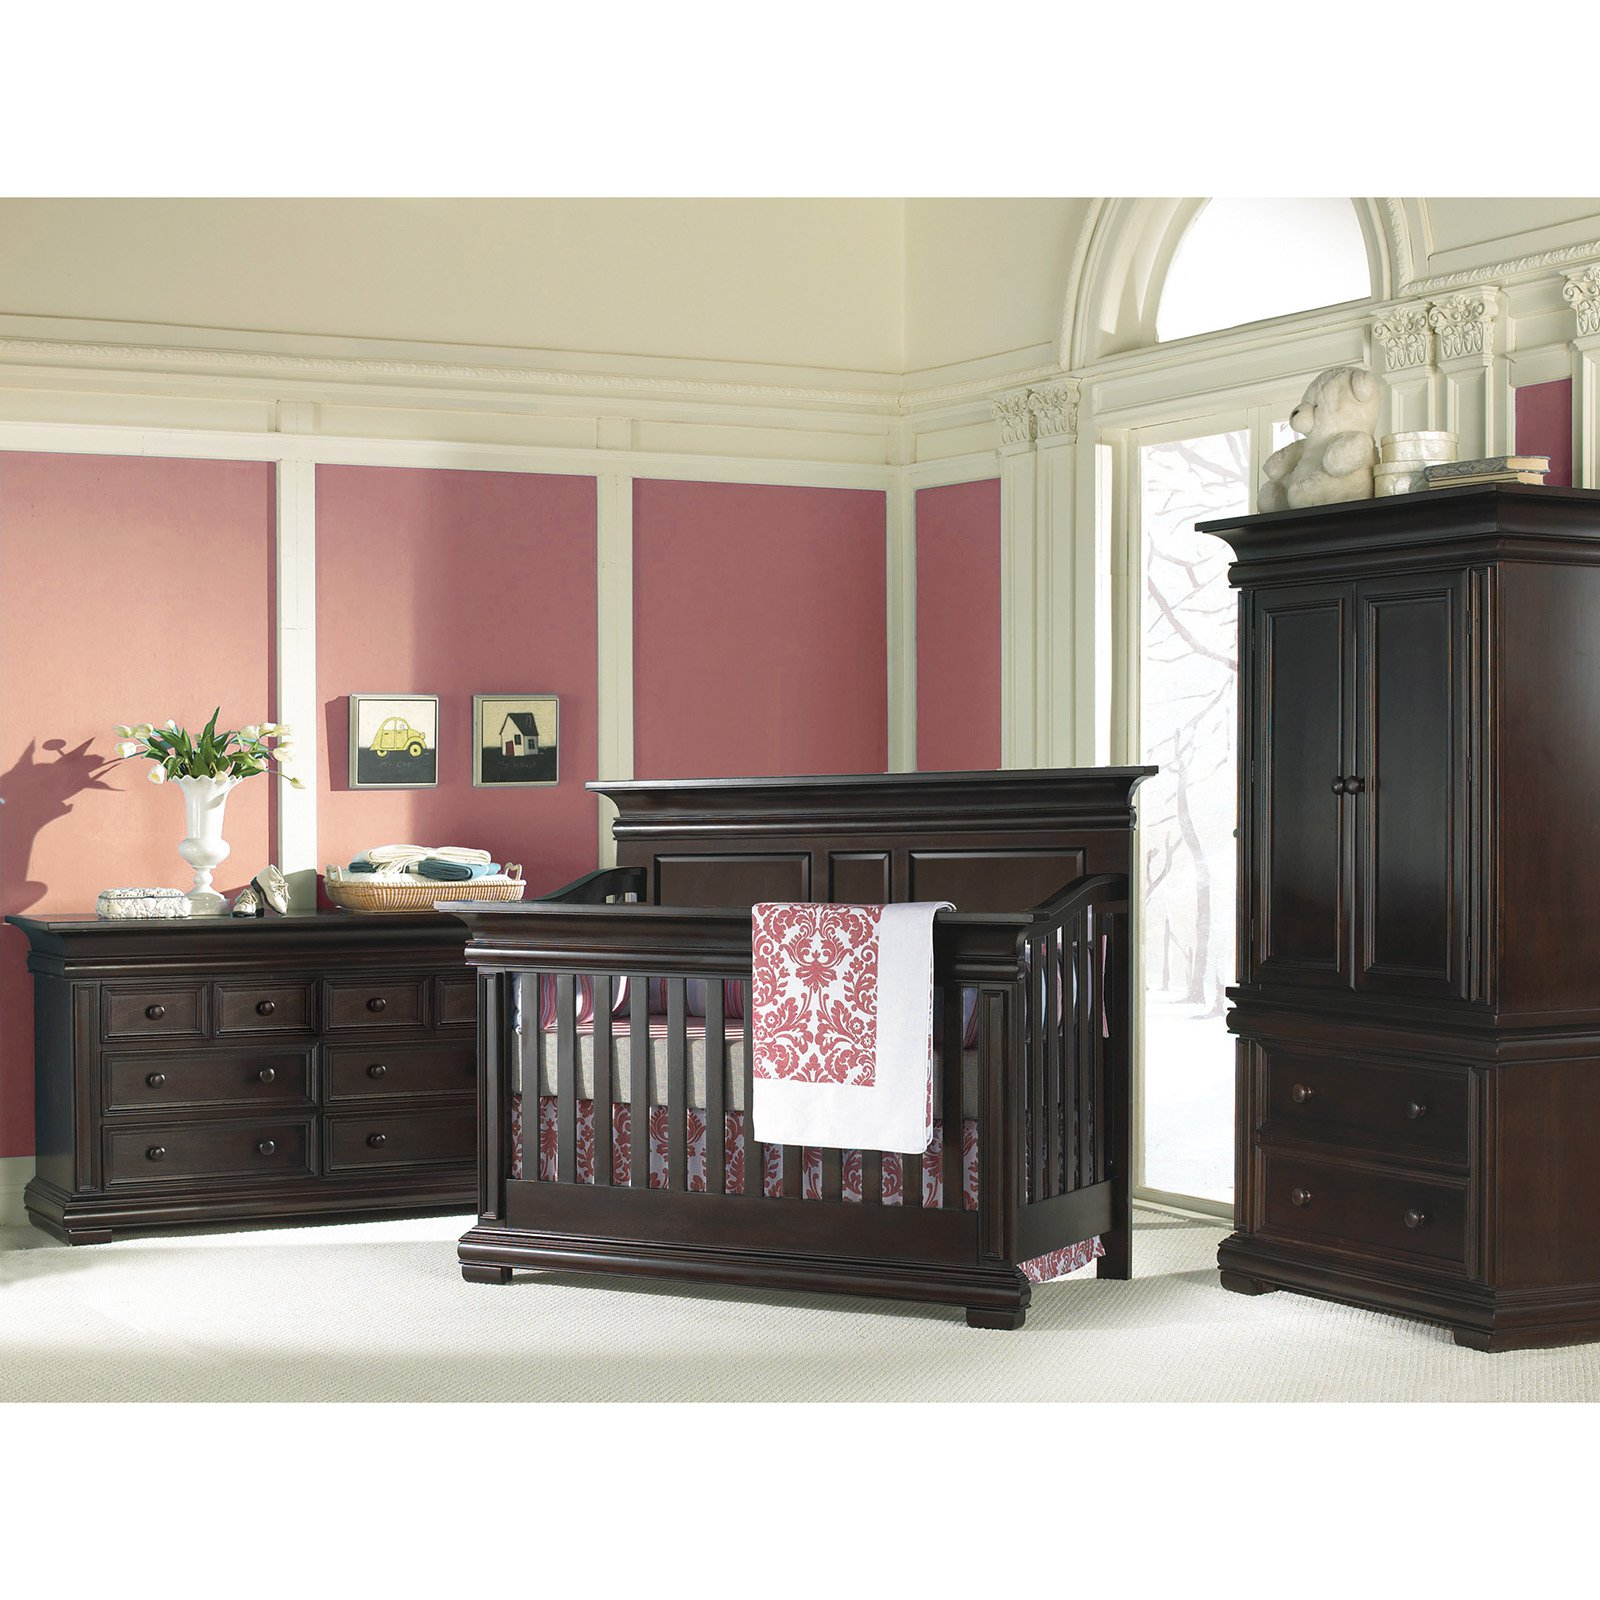 black wooden munire crib plus black wooden cupboard and dresser on white floor matched with pink wall for nursery decor ideas